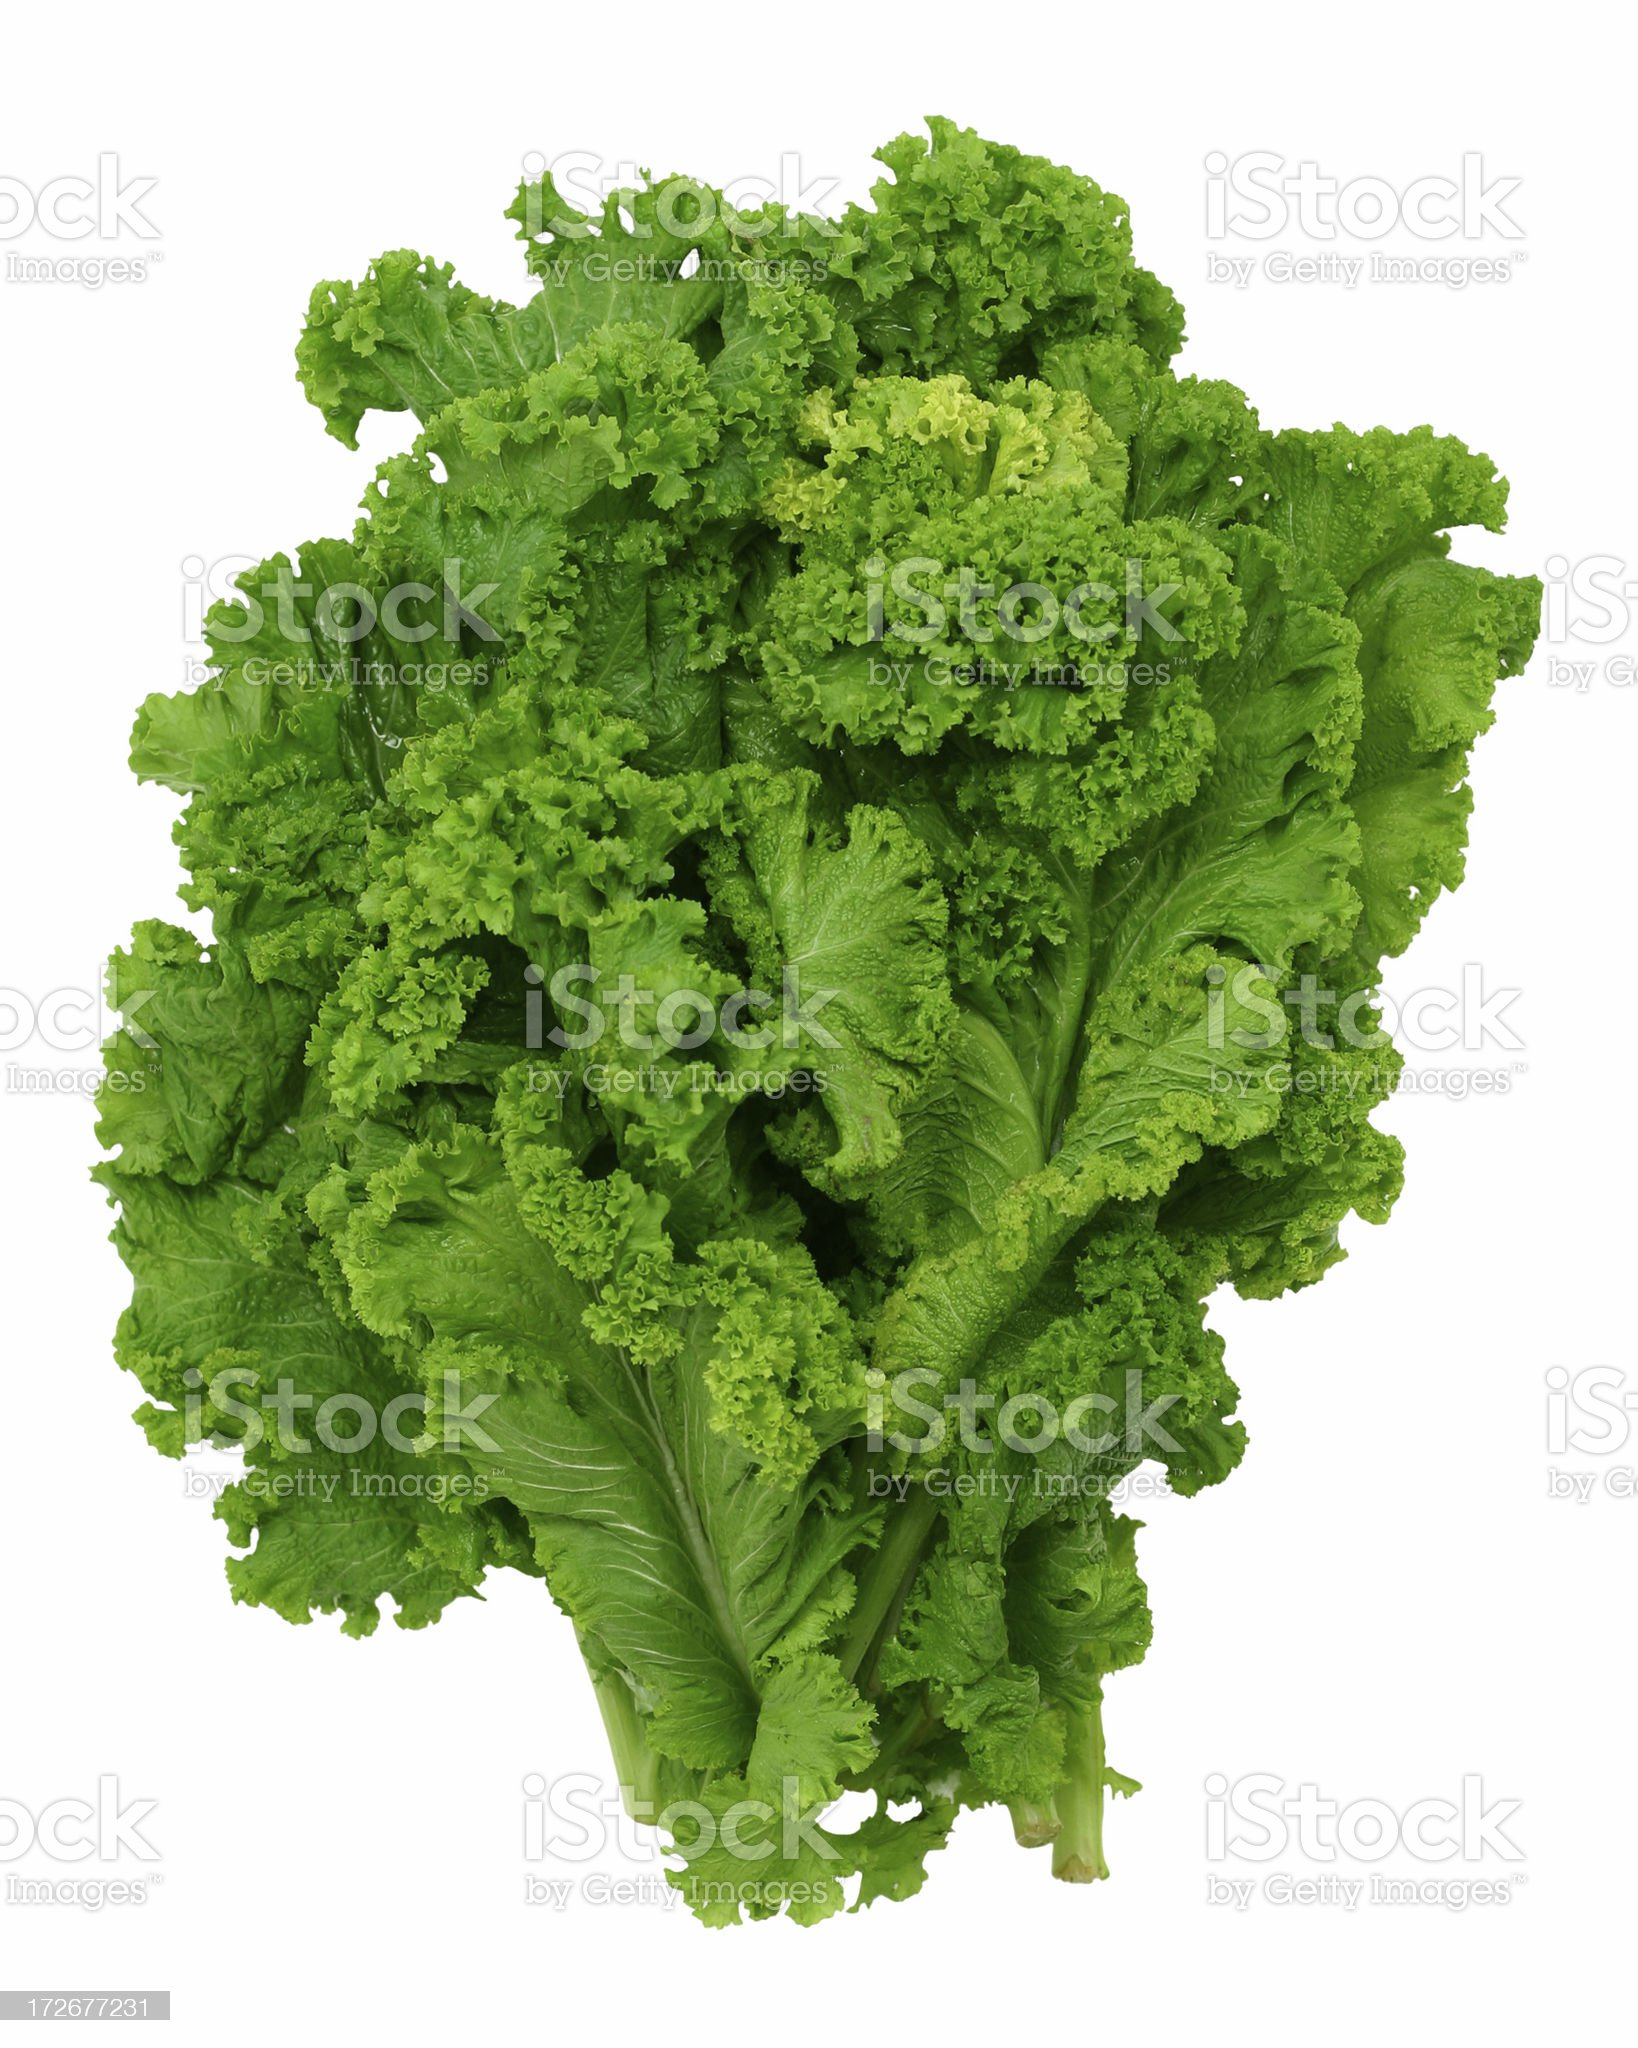 Curly leaf mustard greens royalty-free stock photo